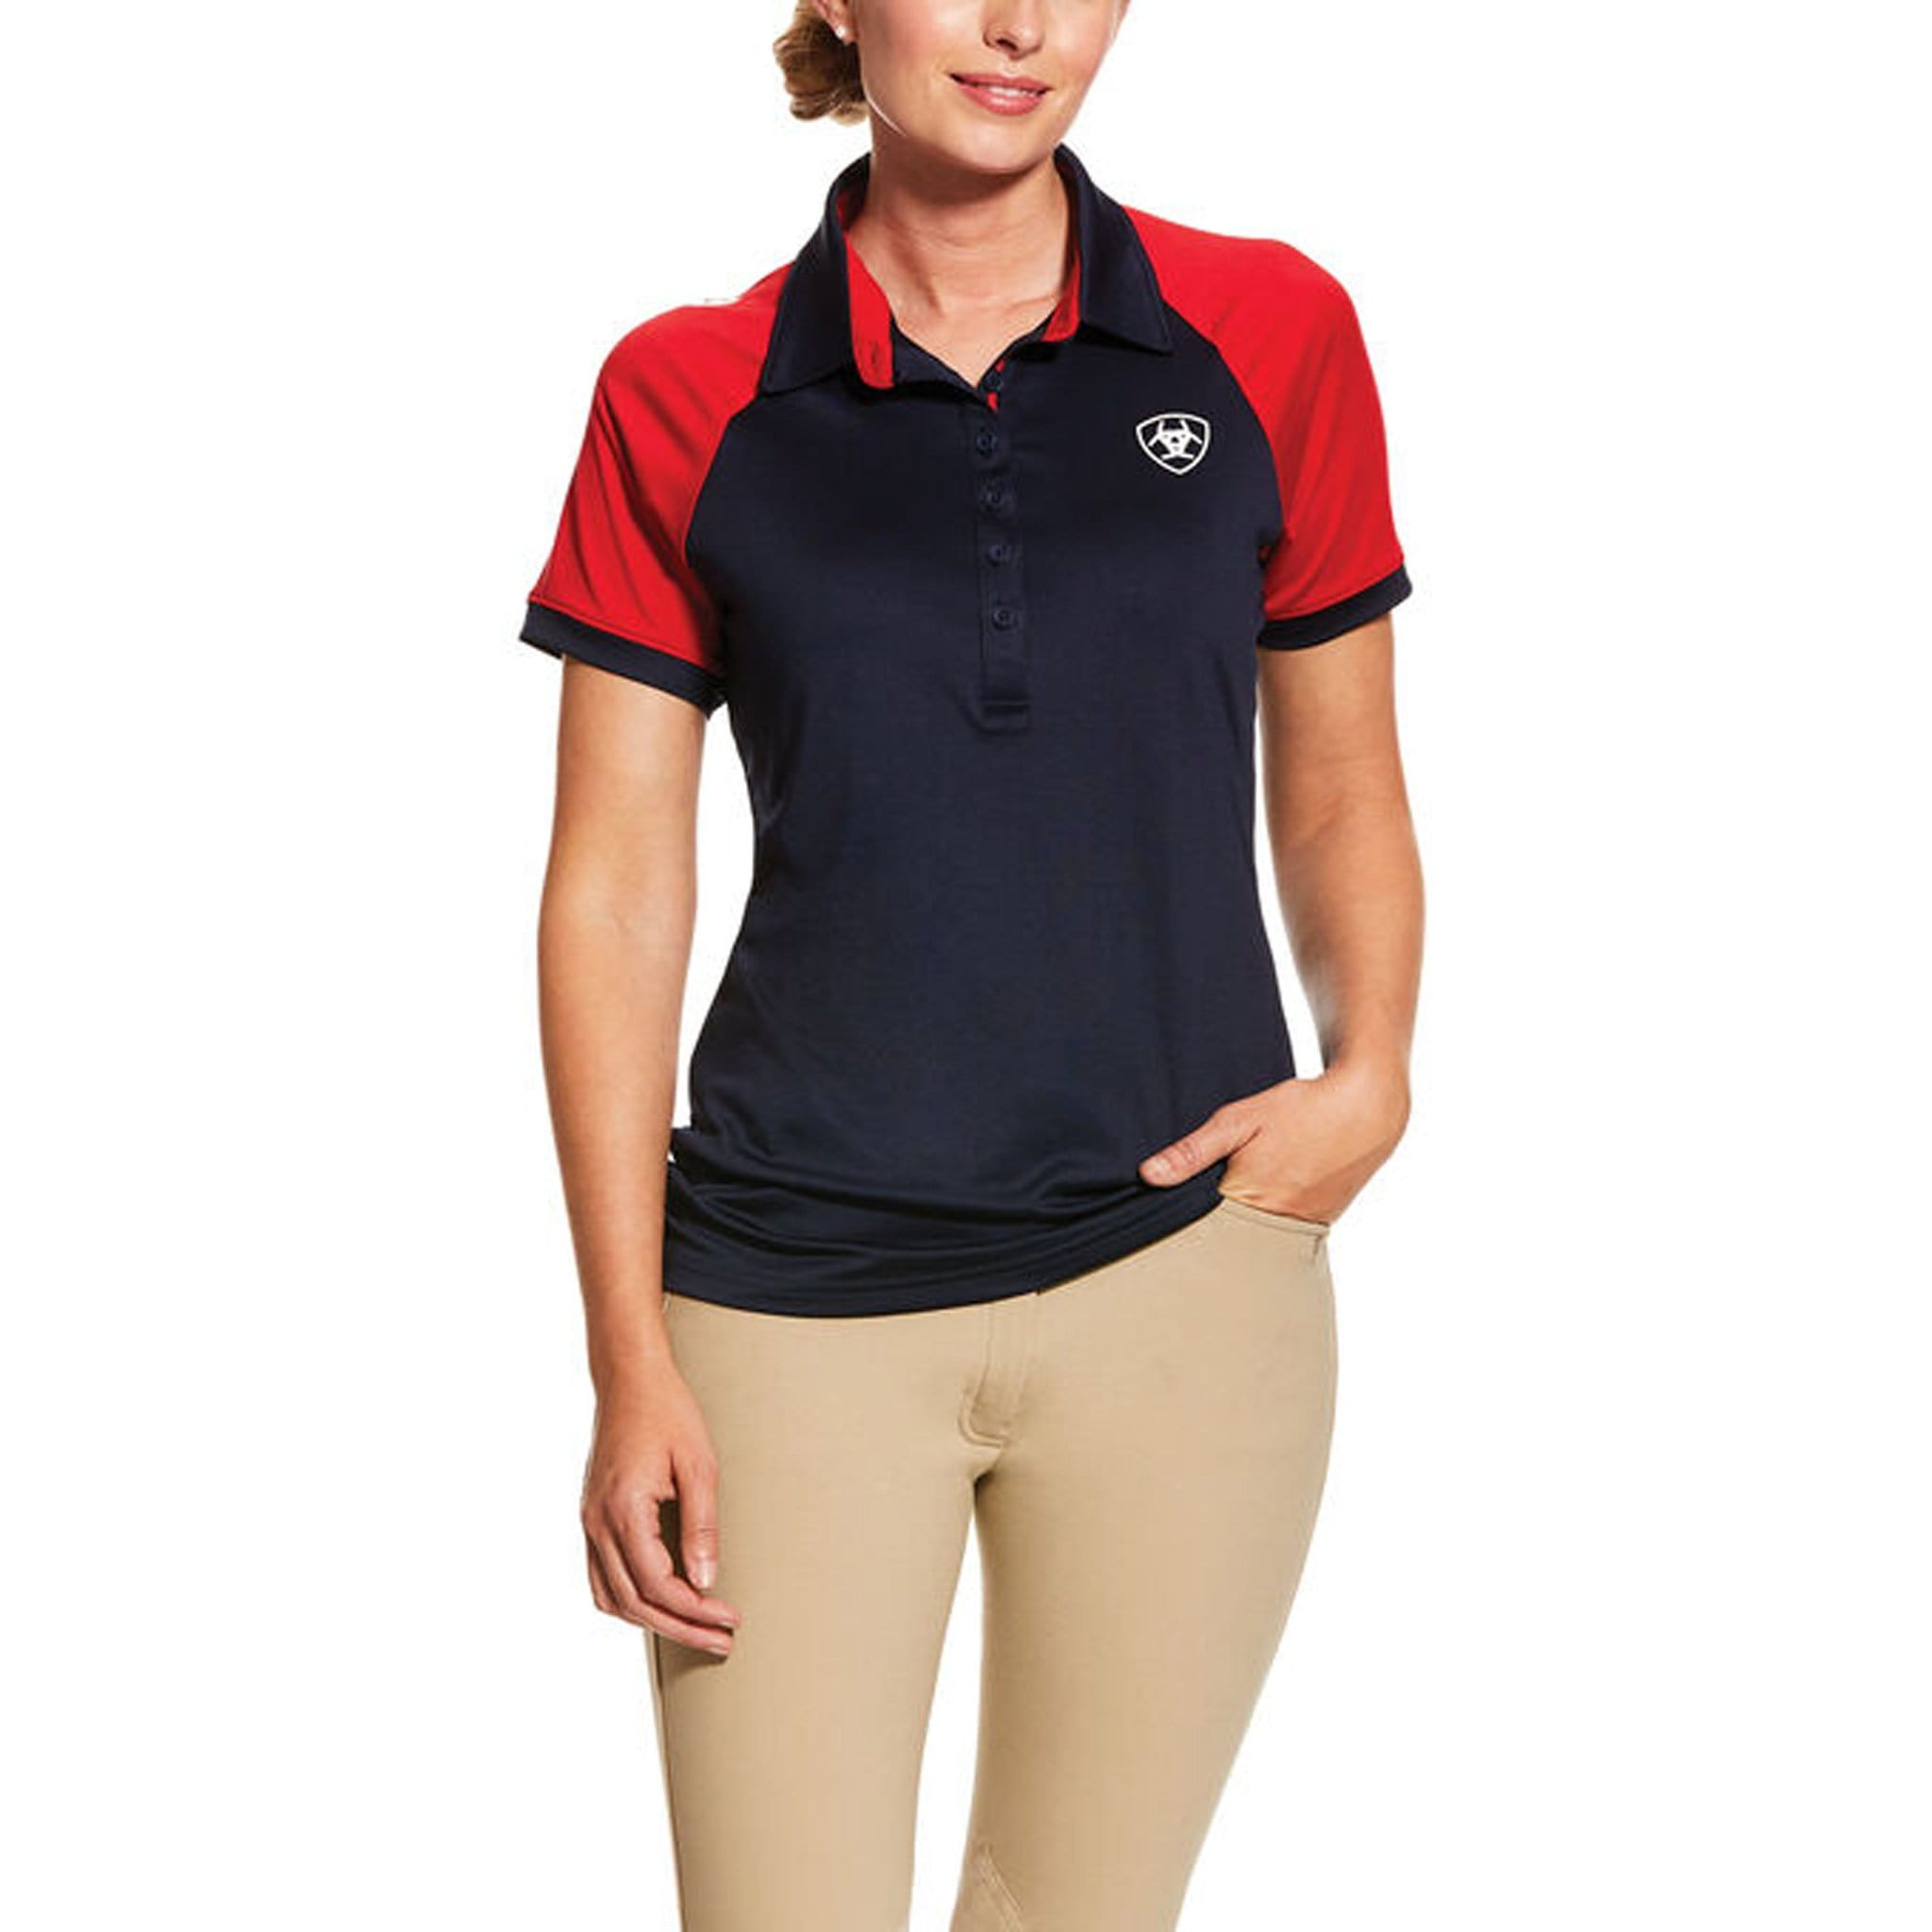 Ariat TEAM 3.0 Polo Red and Navy Front 10030552